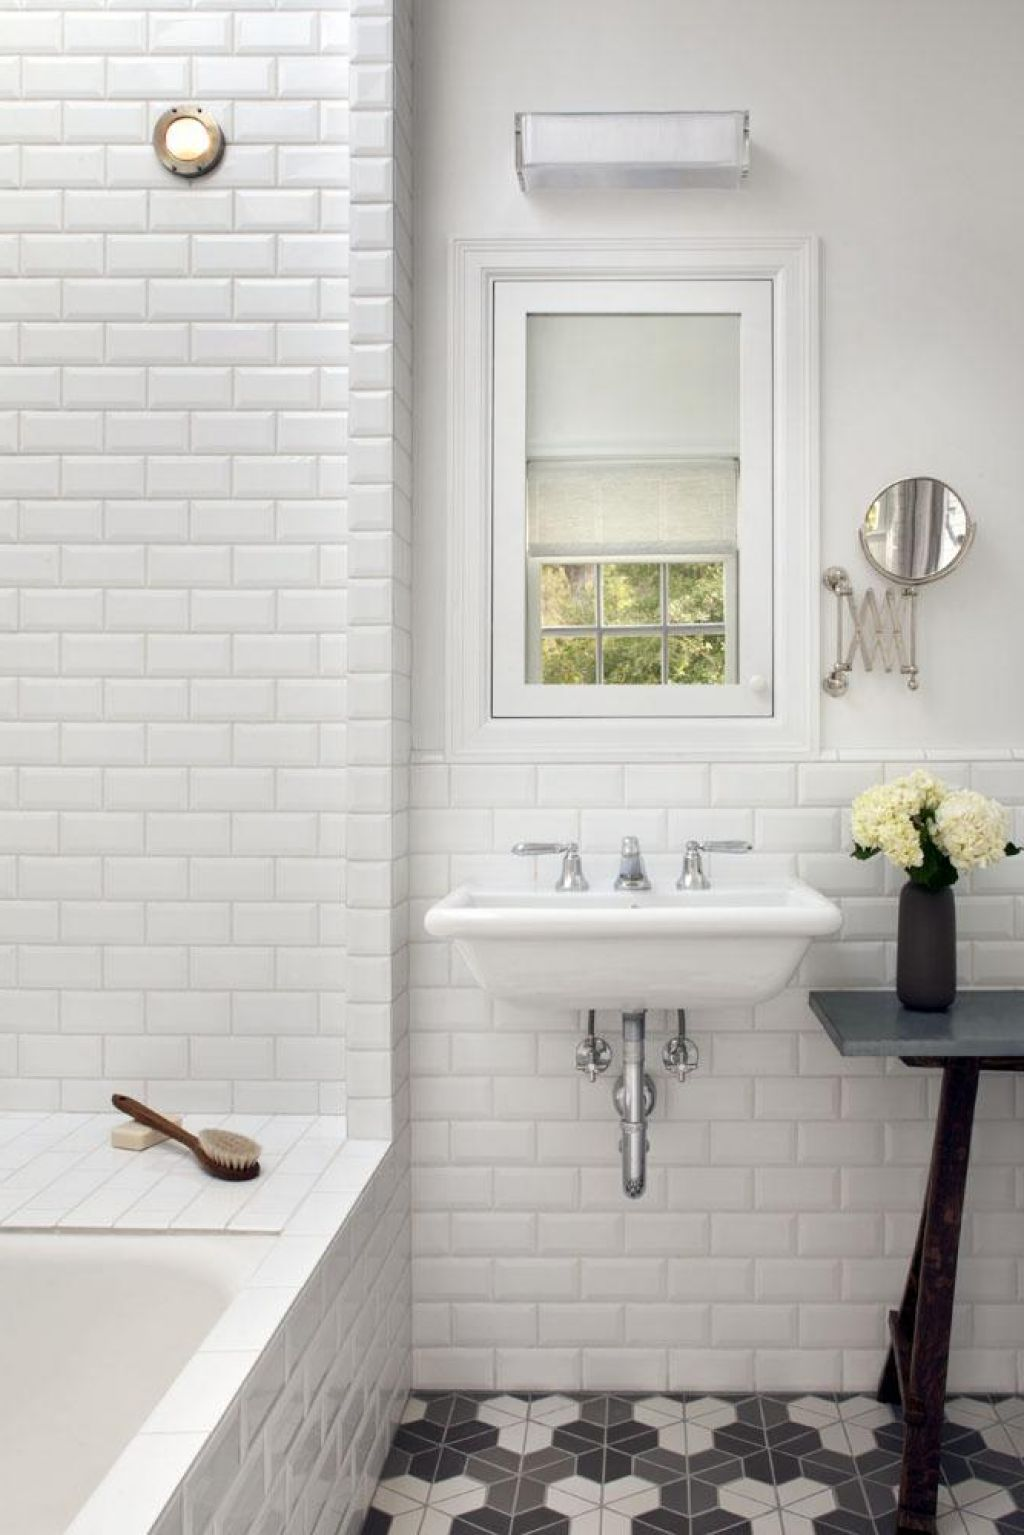 Subway tile bathroom ideas floor city wide kitchen and for White bathroom tiles ideas